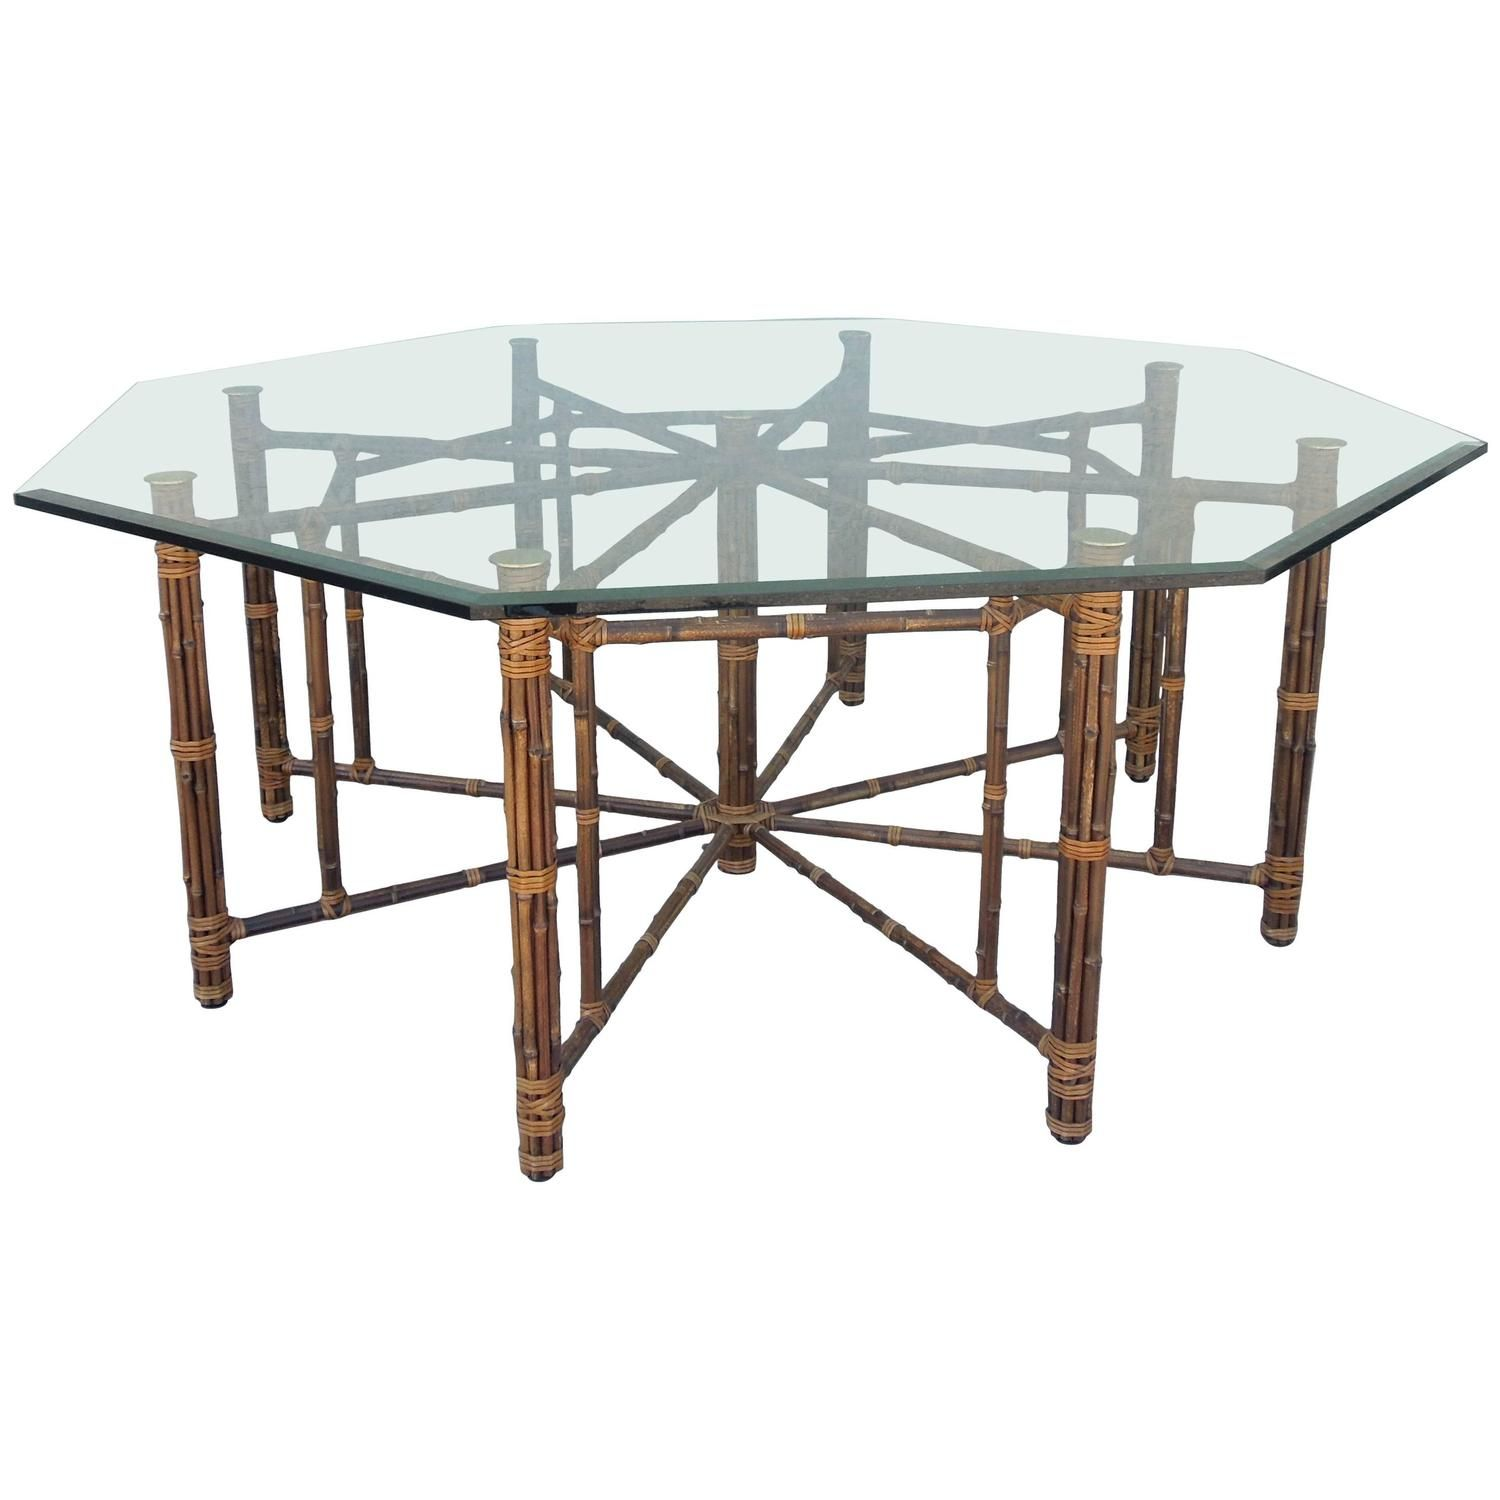 Rare Eight Leg Vintage McGuire Hexagon Dining Table